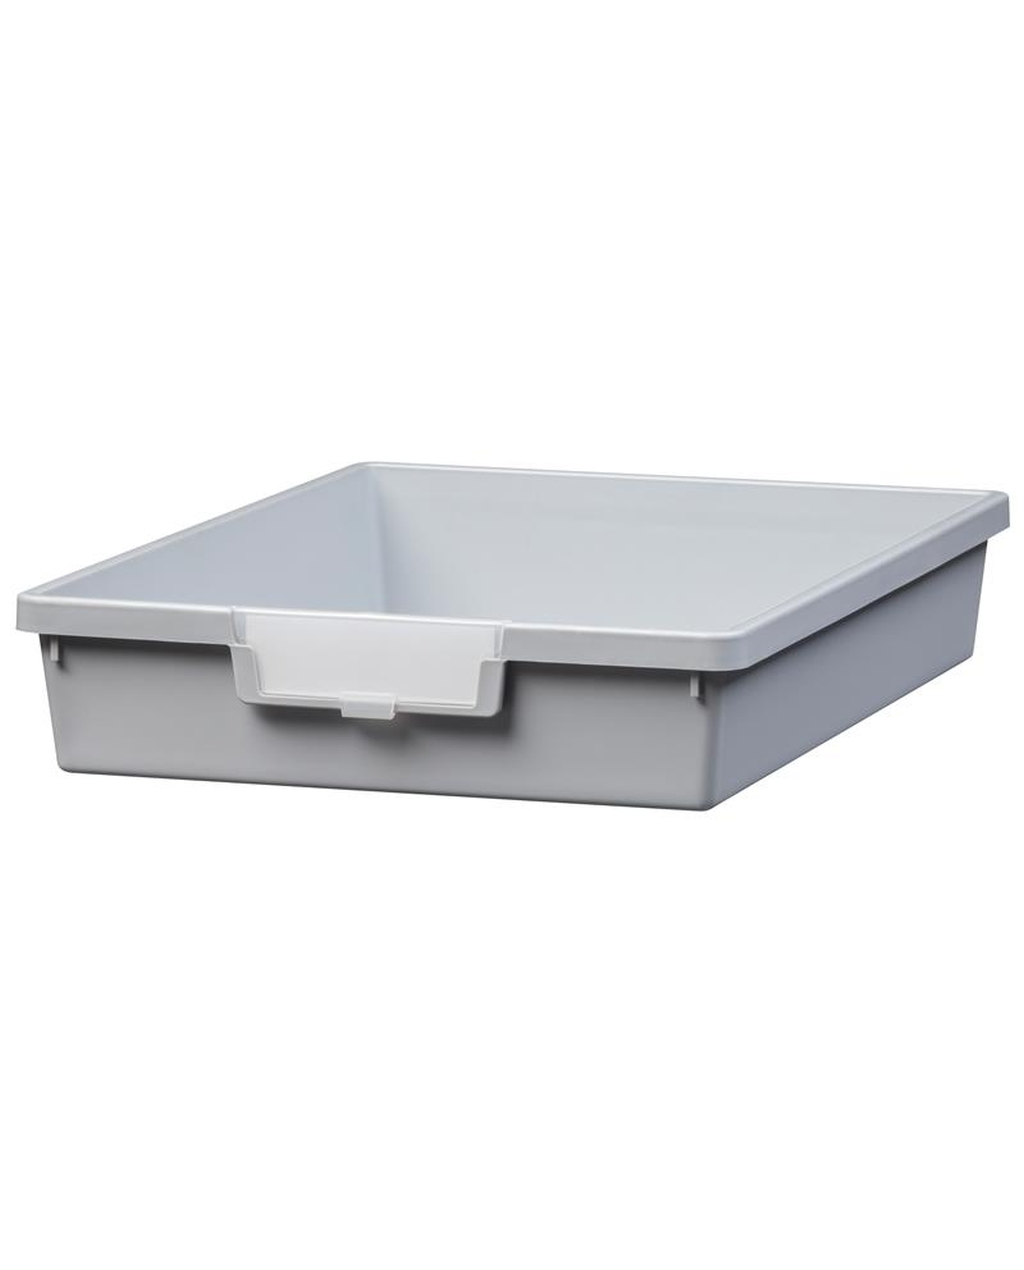 Shatterproof Single Depth Tray Cool - Grey